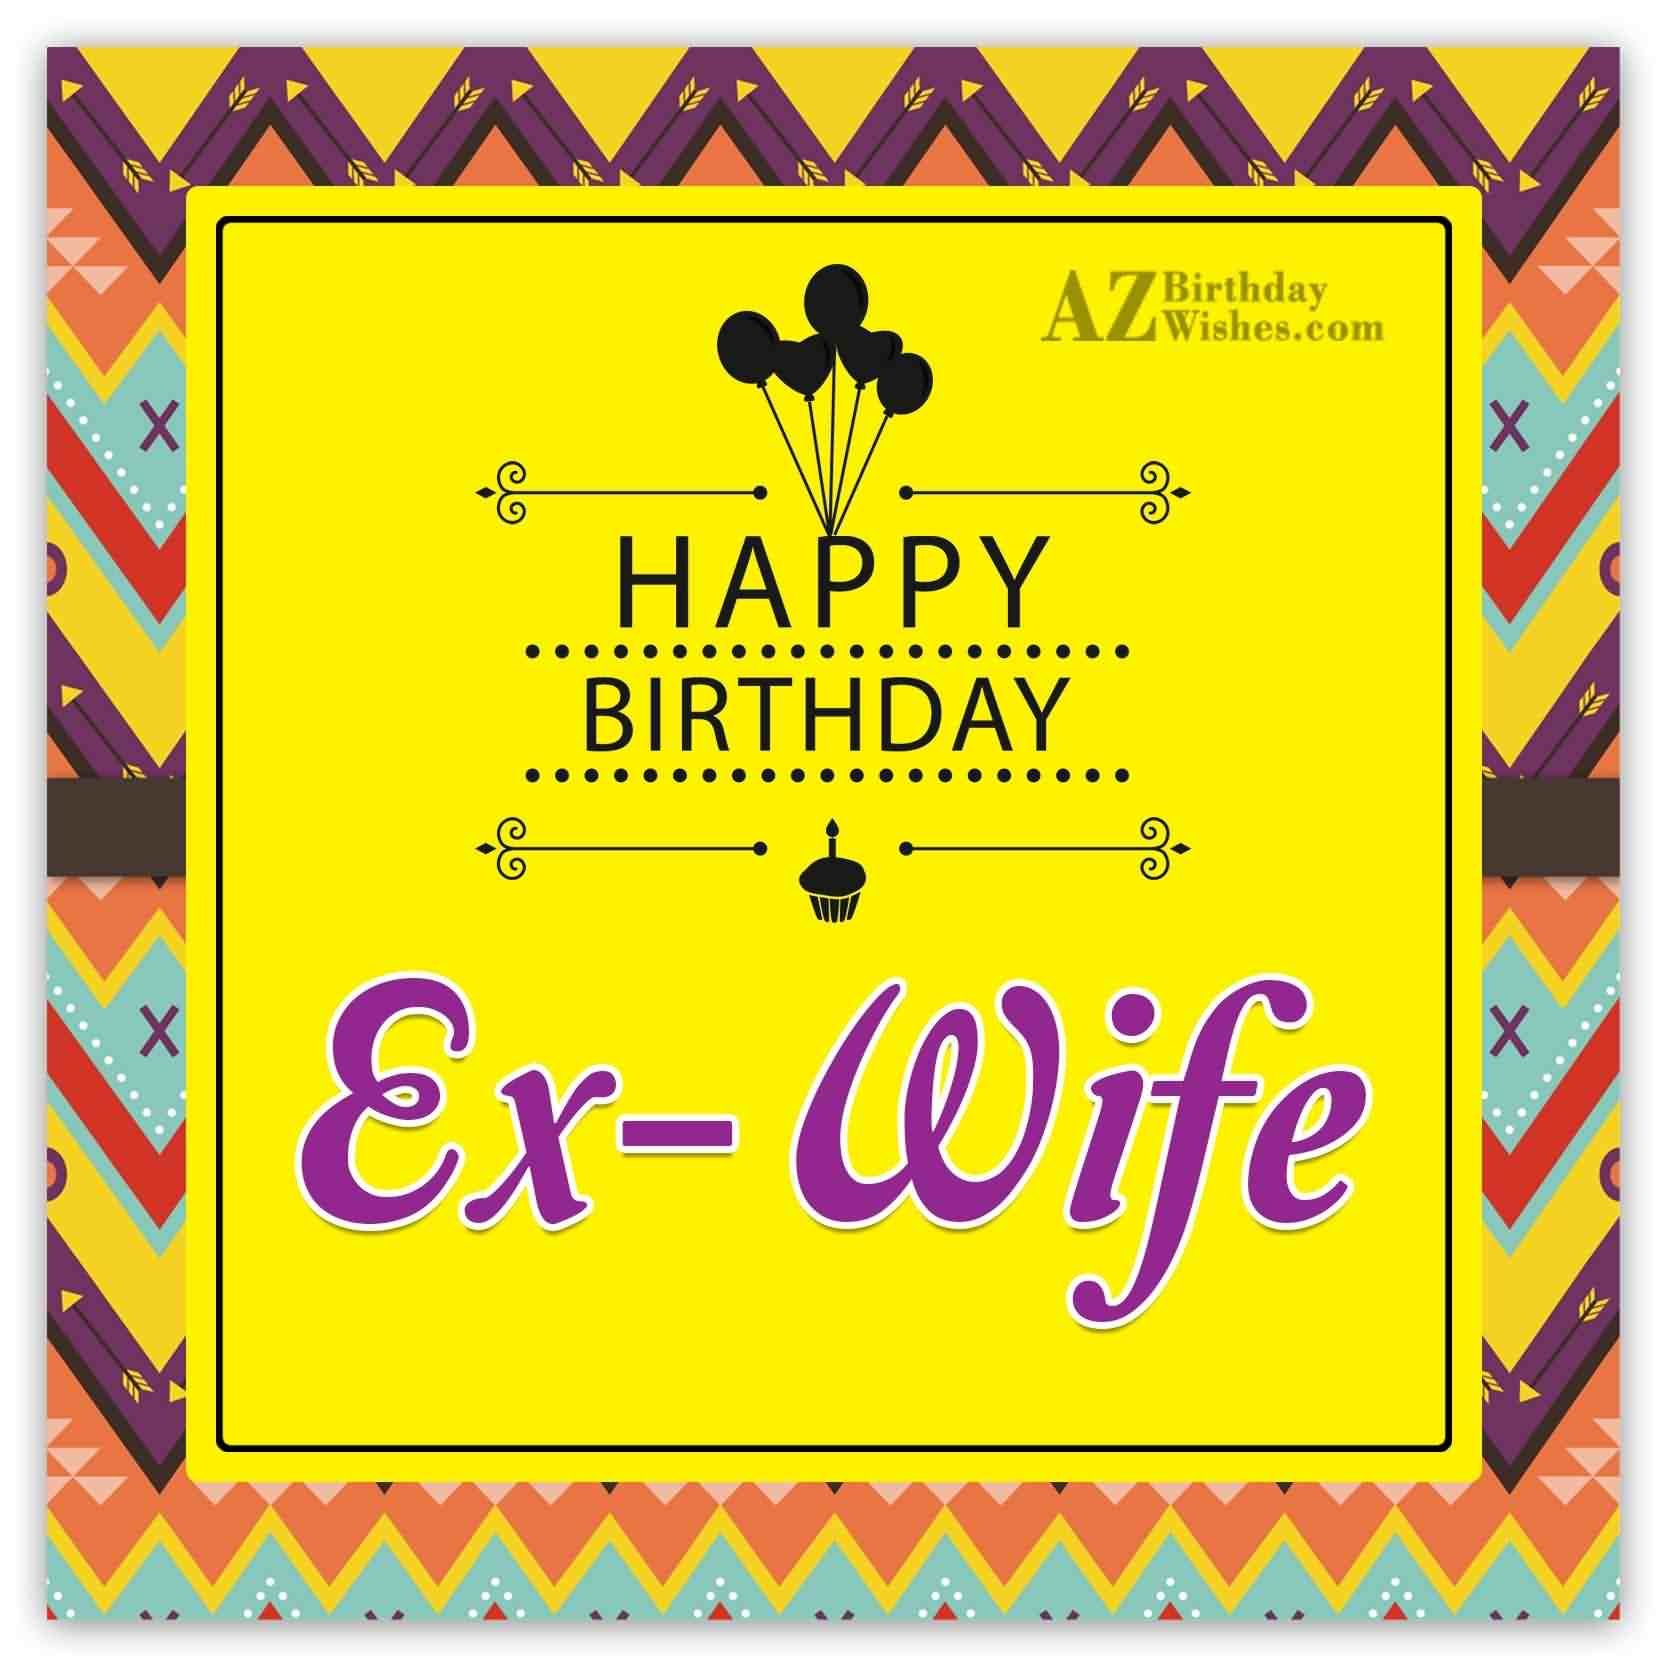 Brilliant Birthday Wishes And Greetings E-Cards